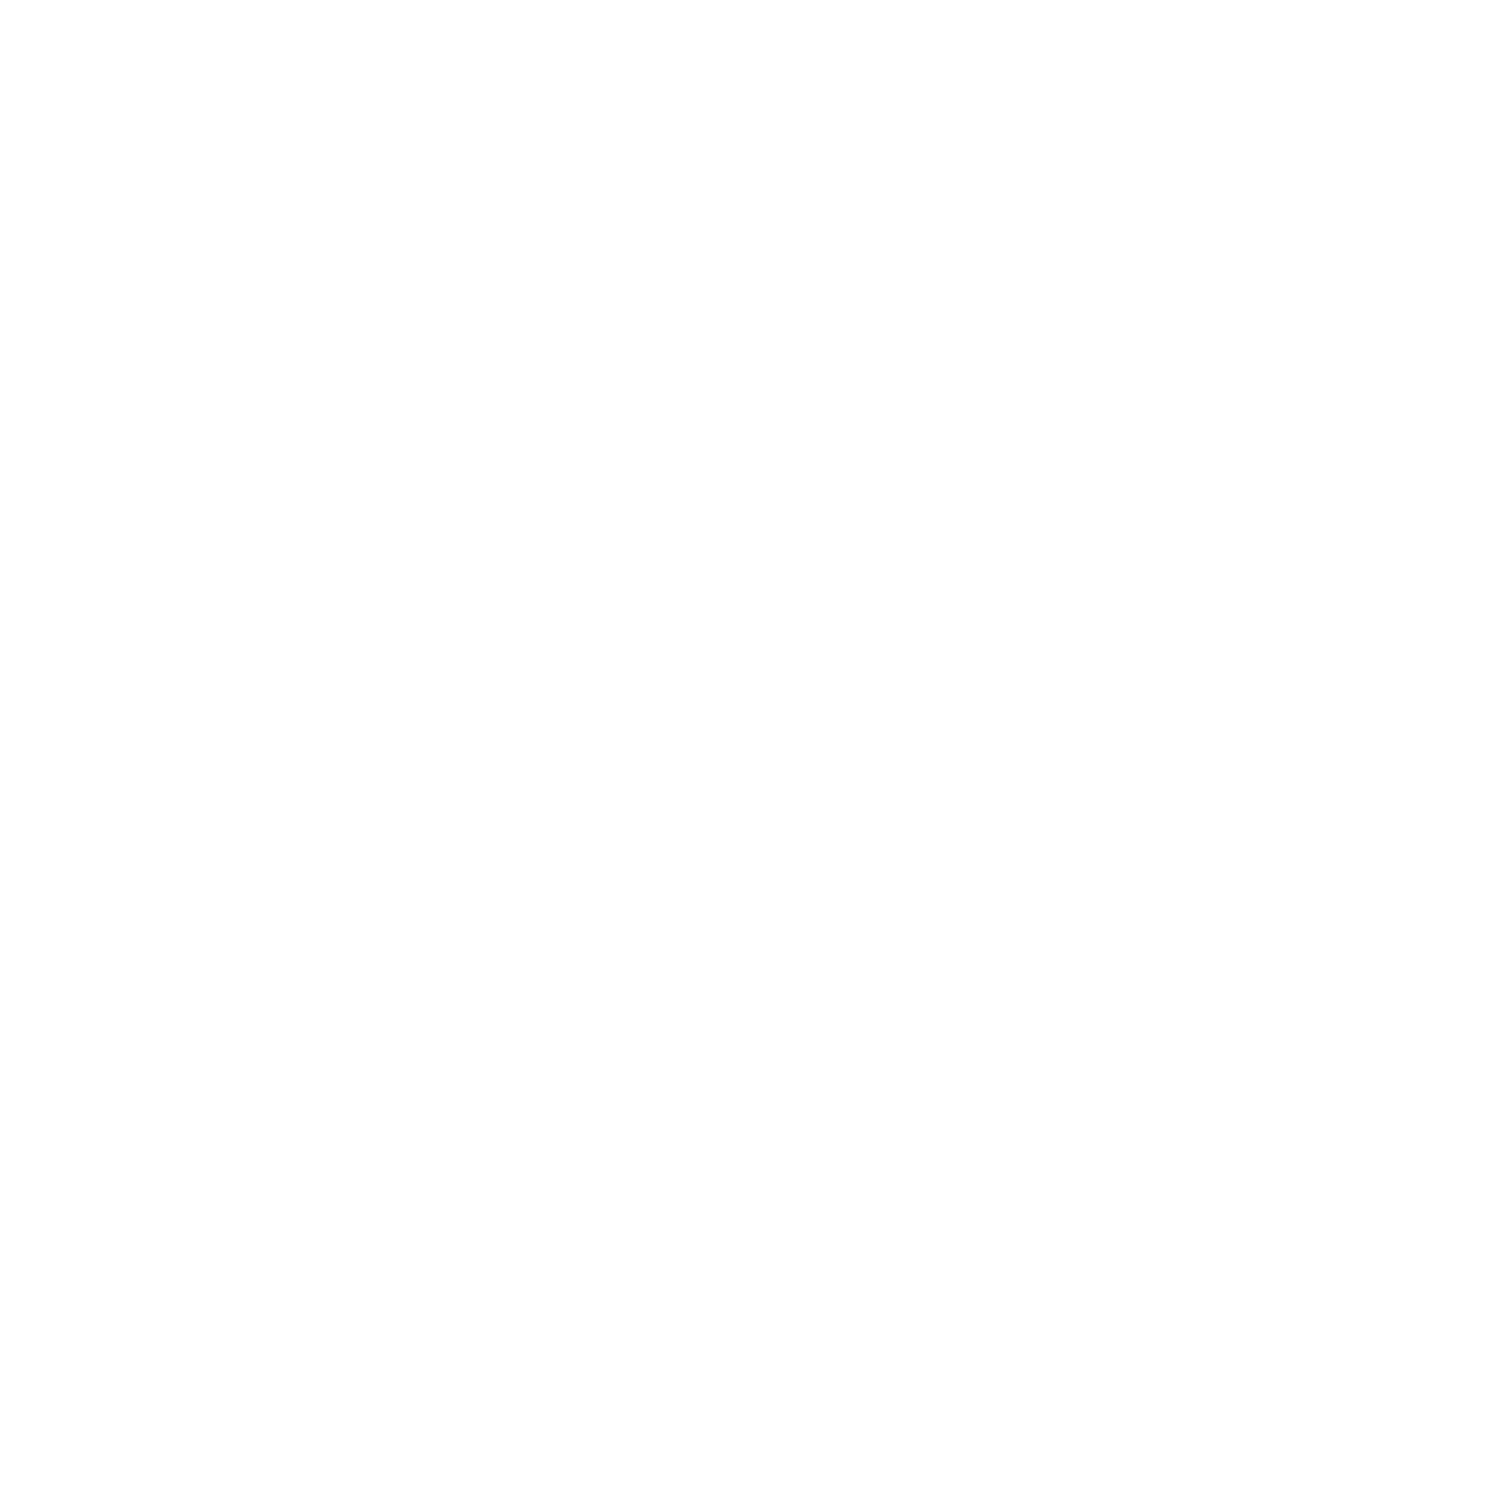 Sunwood Recording